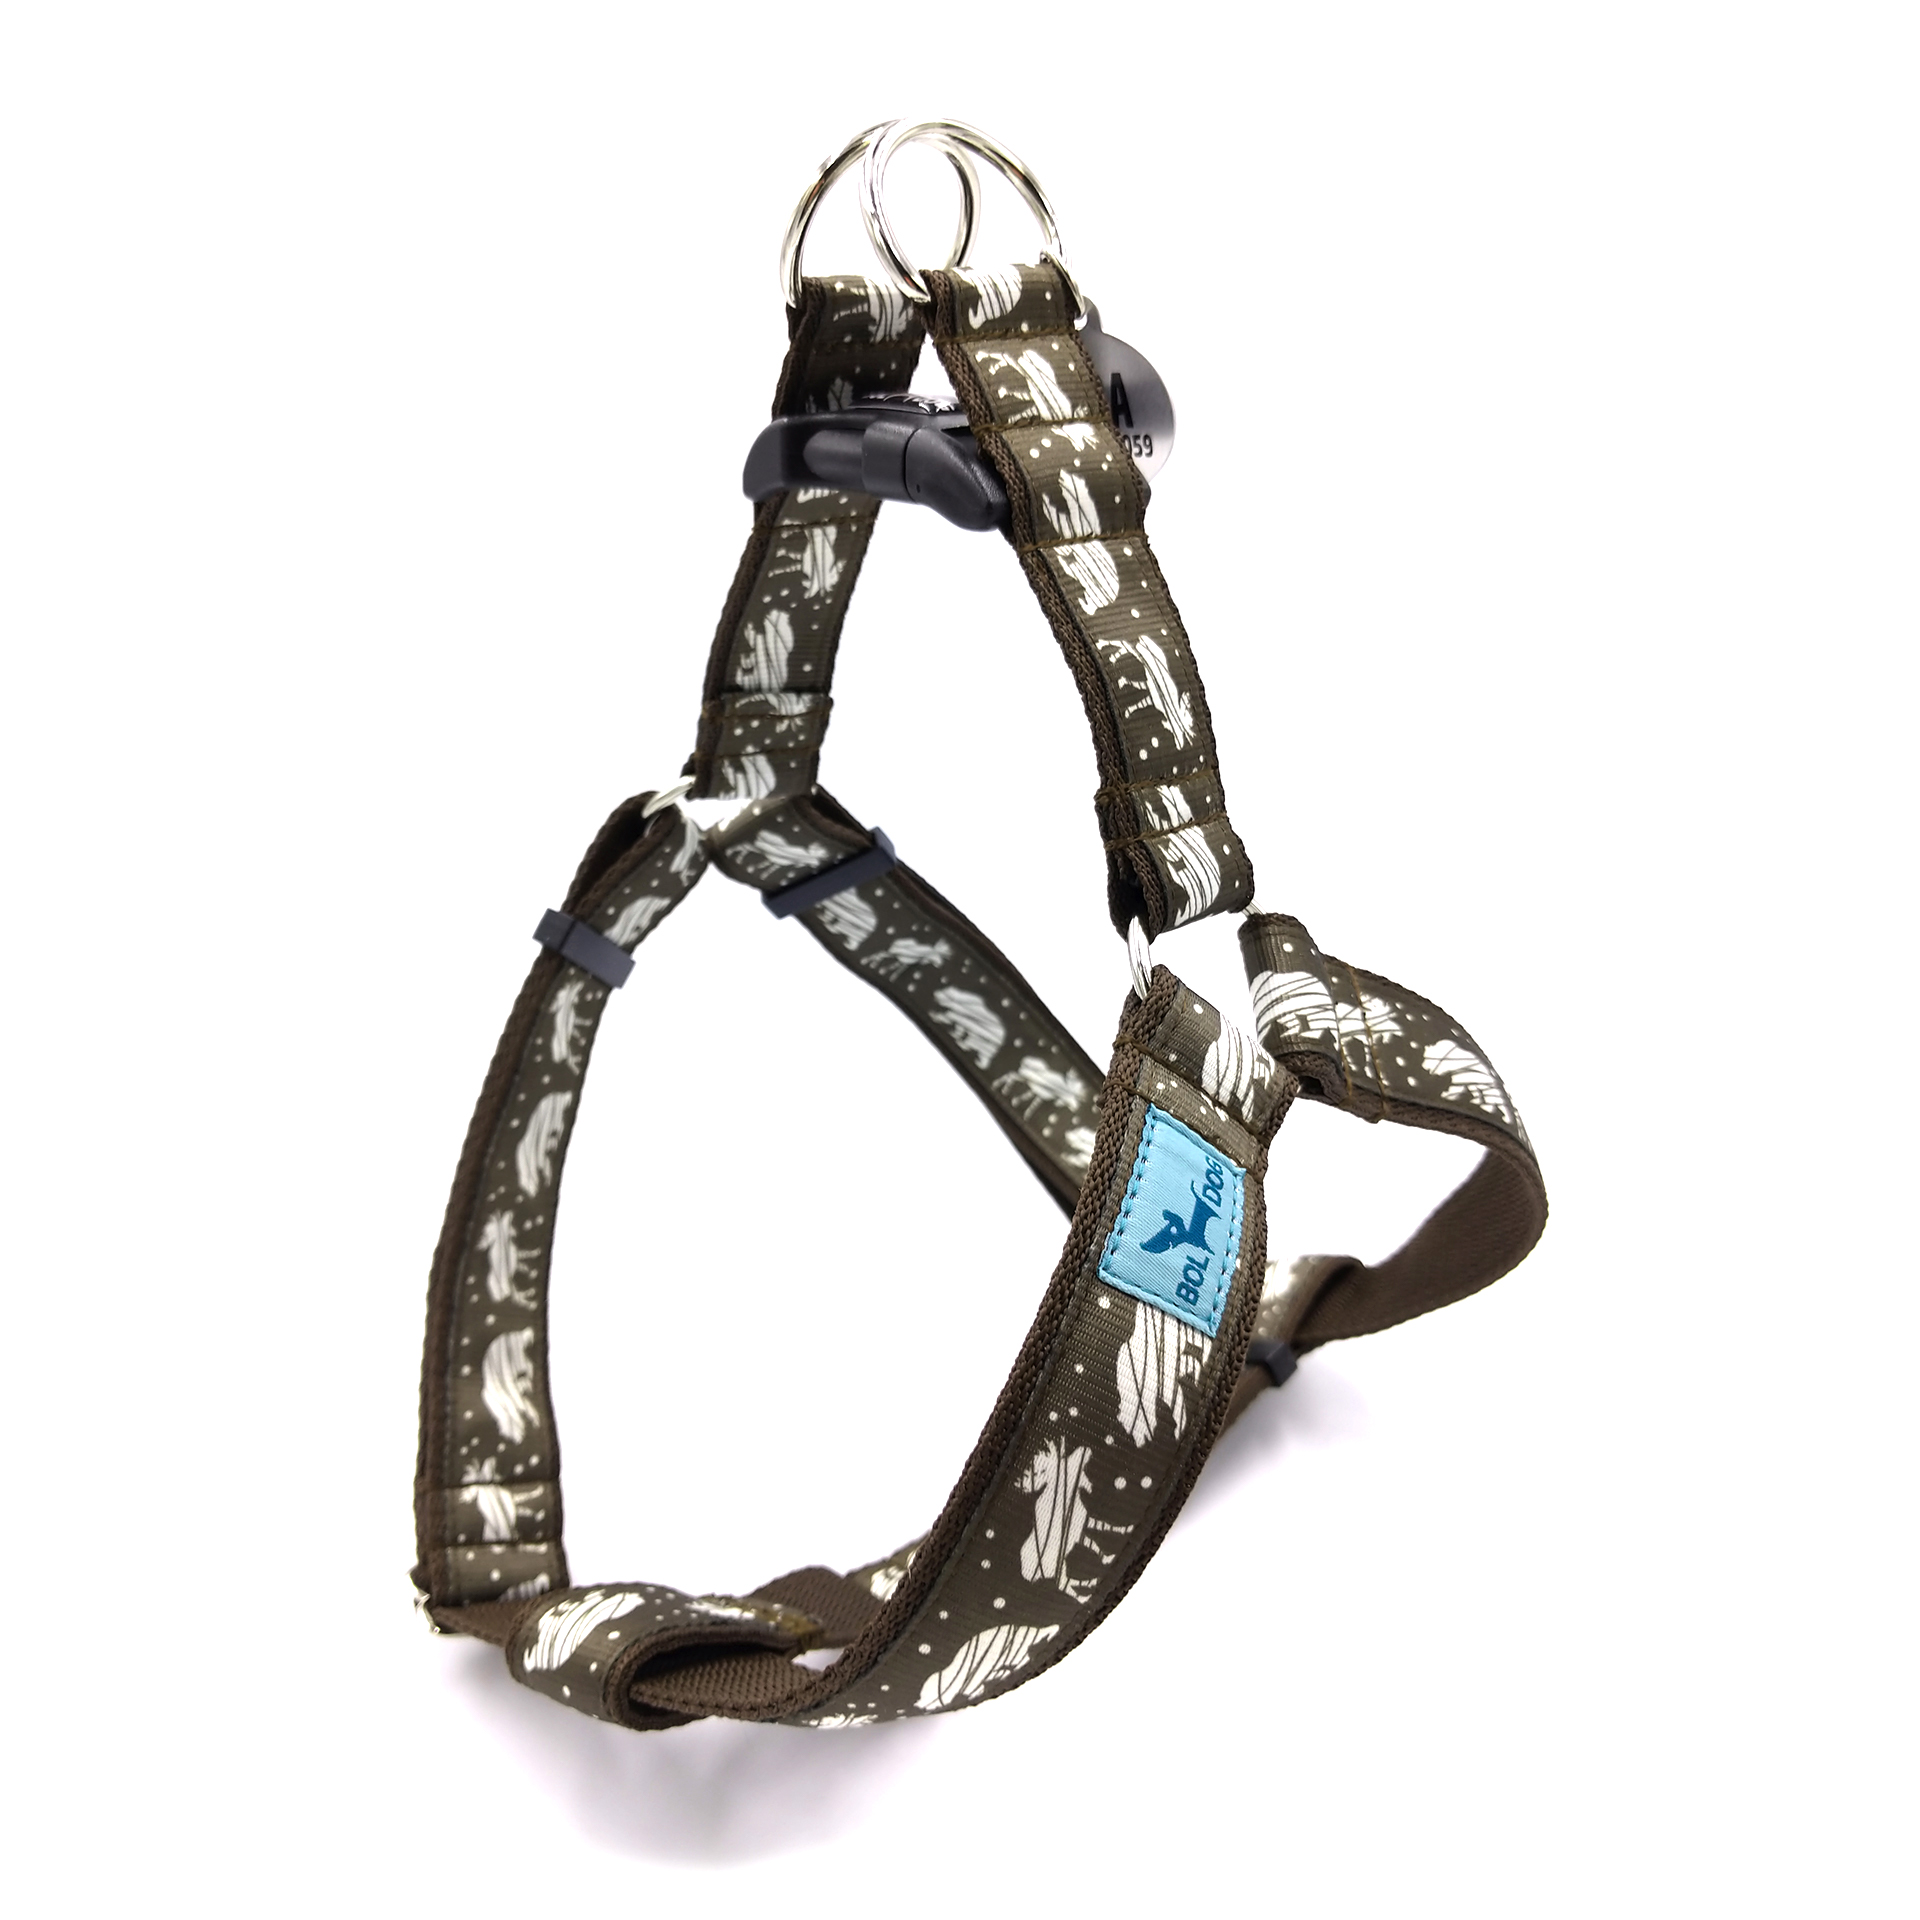 Tundra dog harness